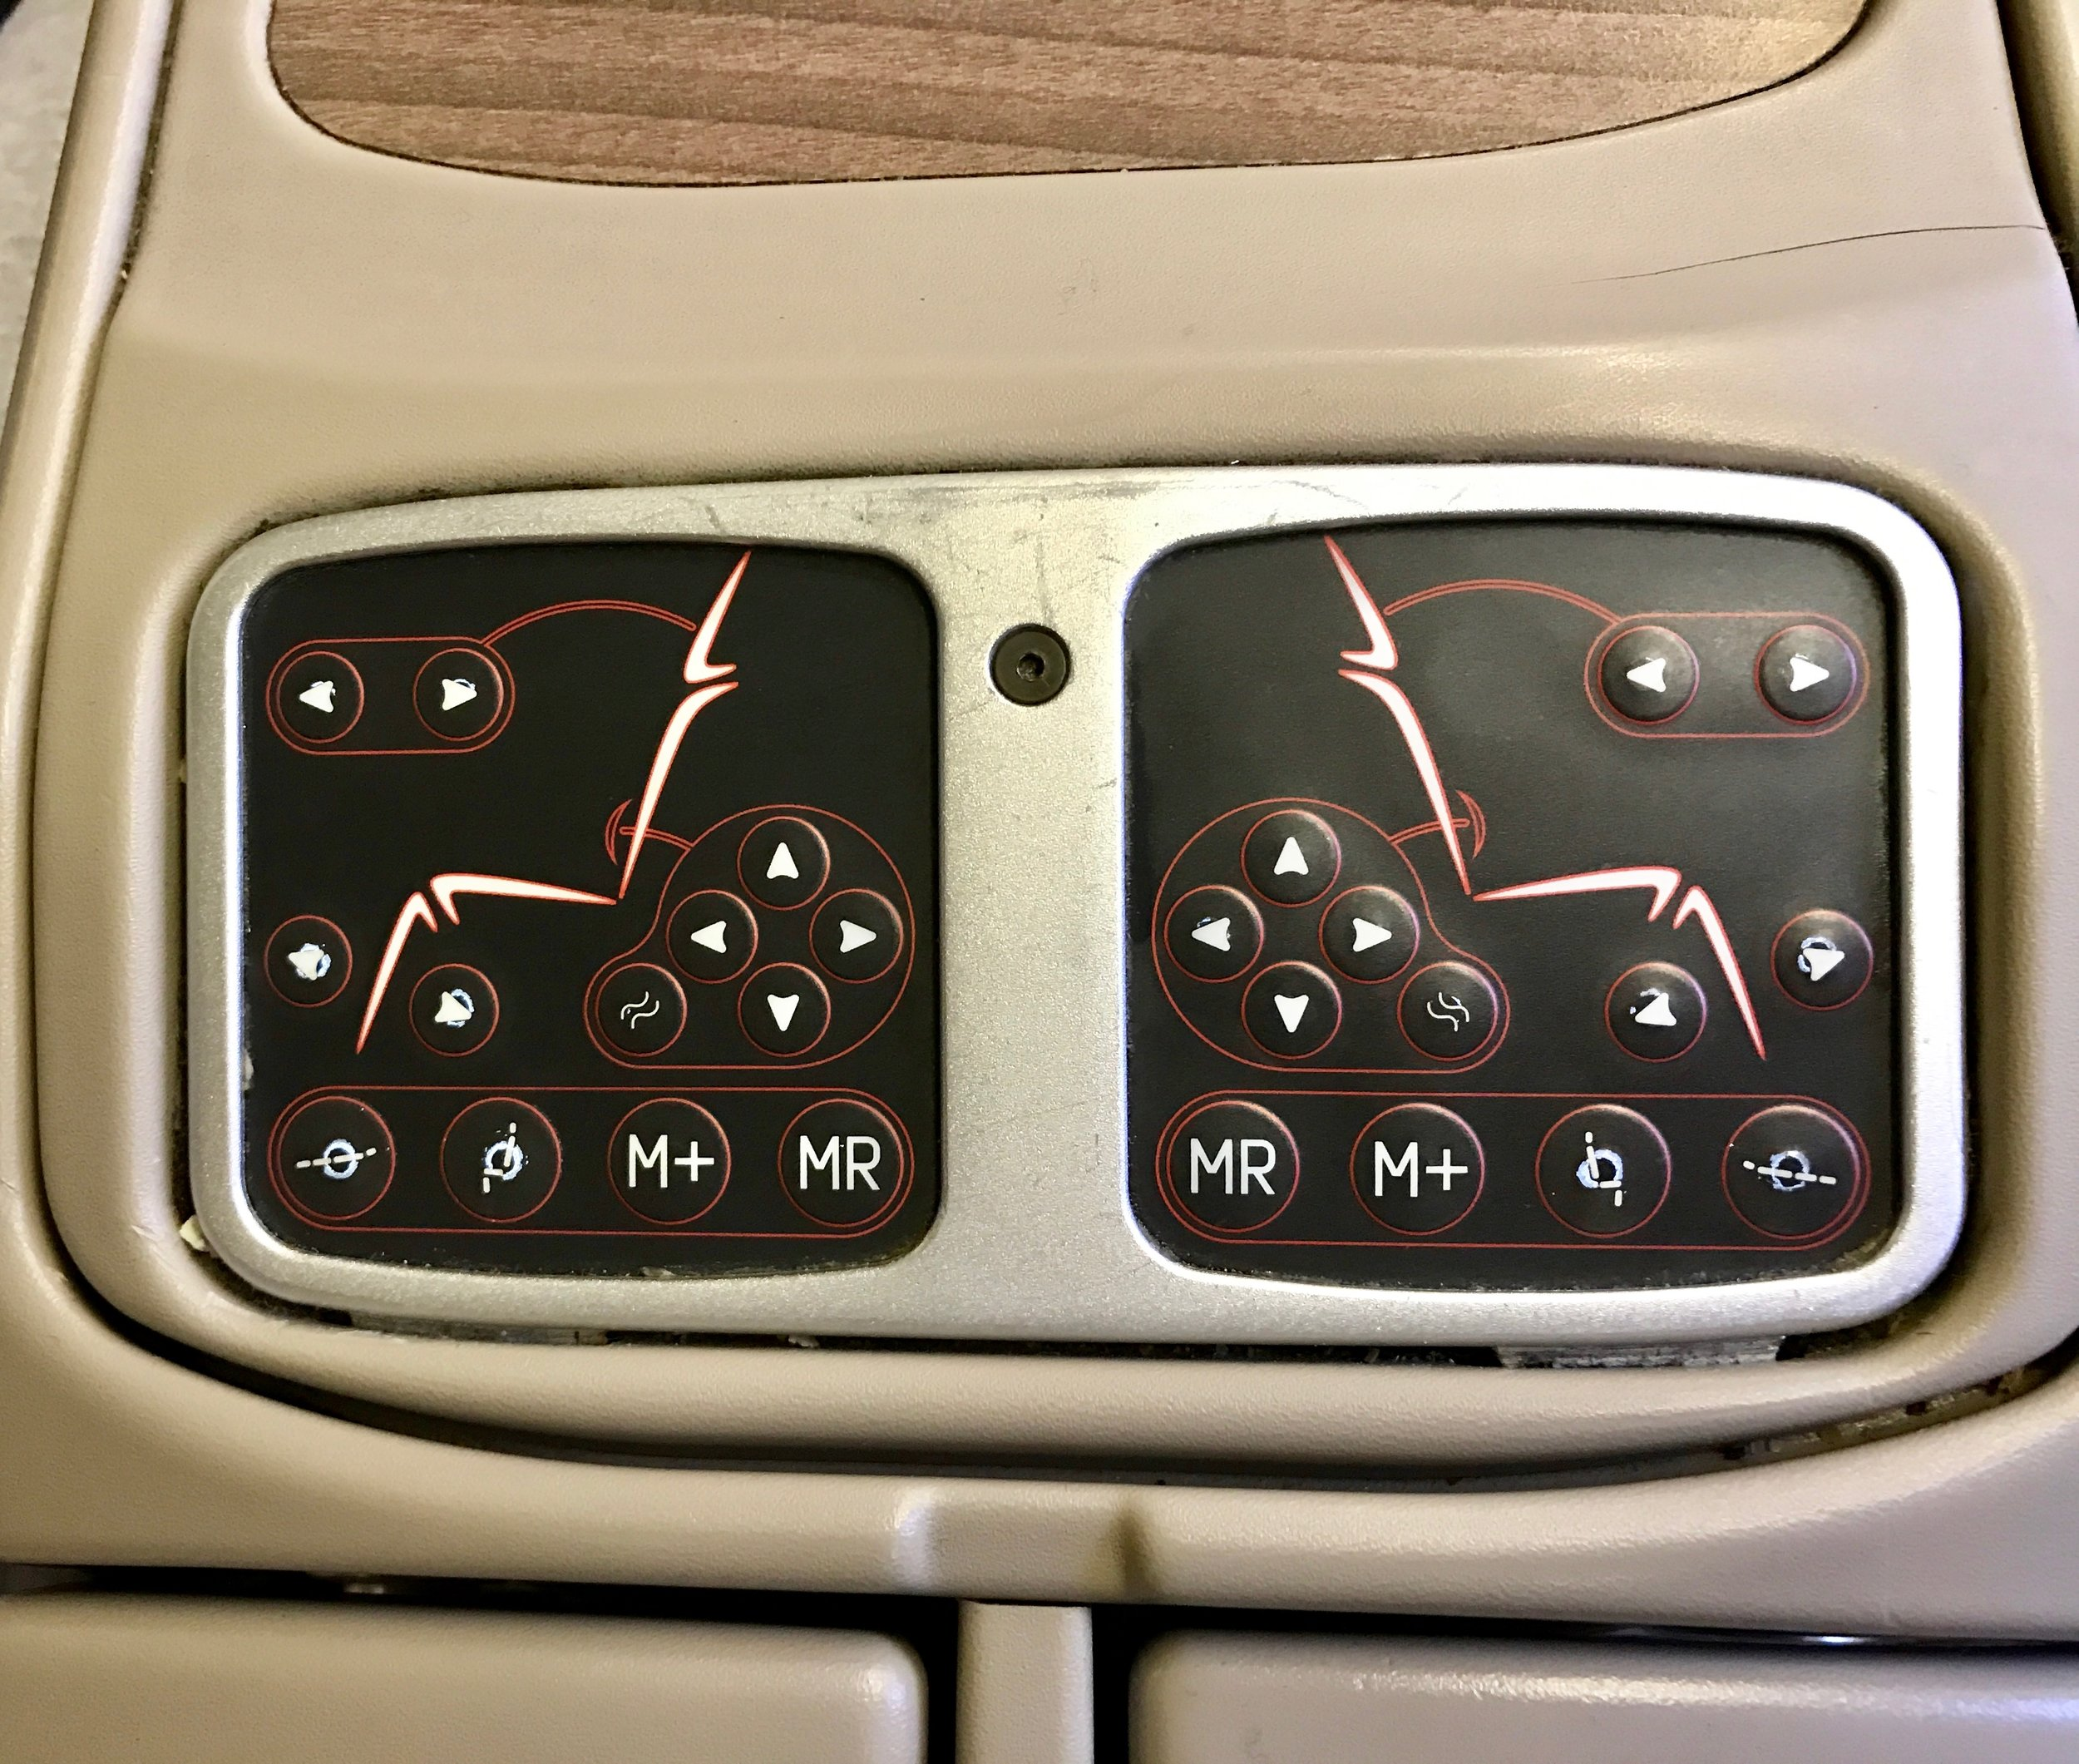 Turkish Airlines business class seat controls.jpg